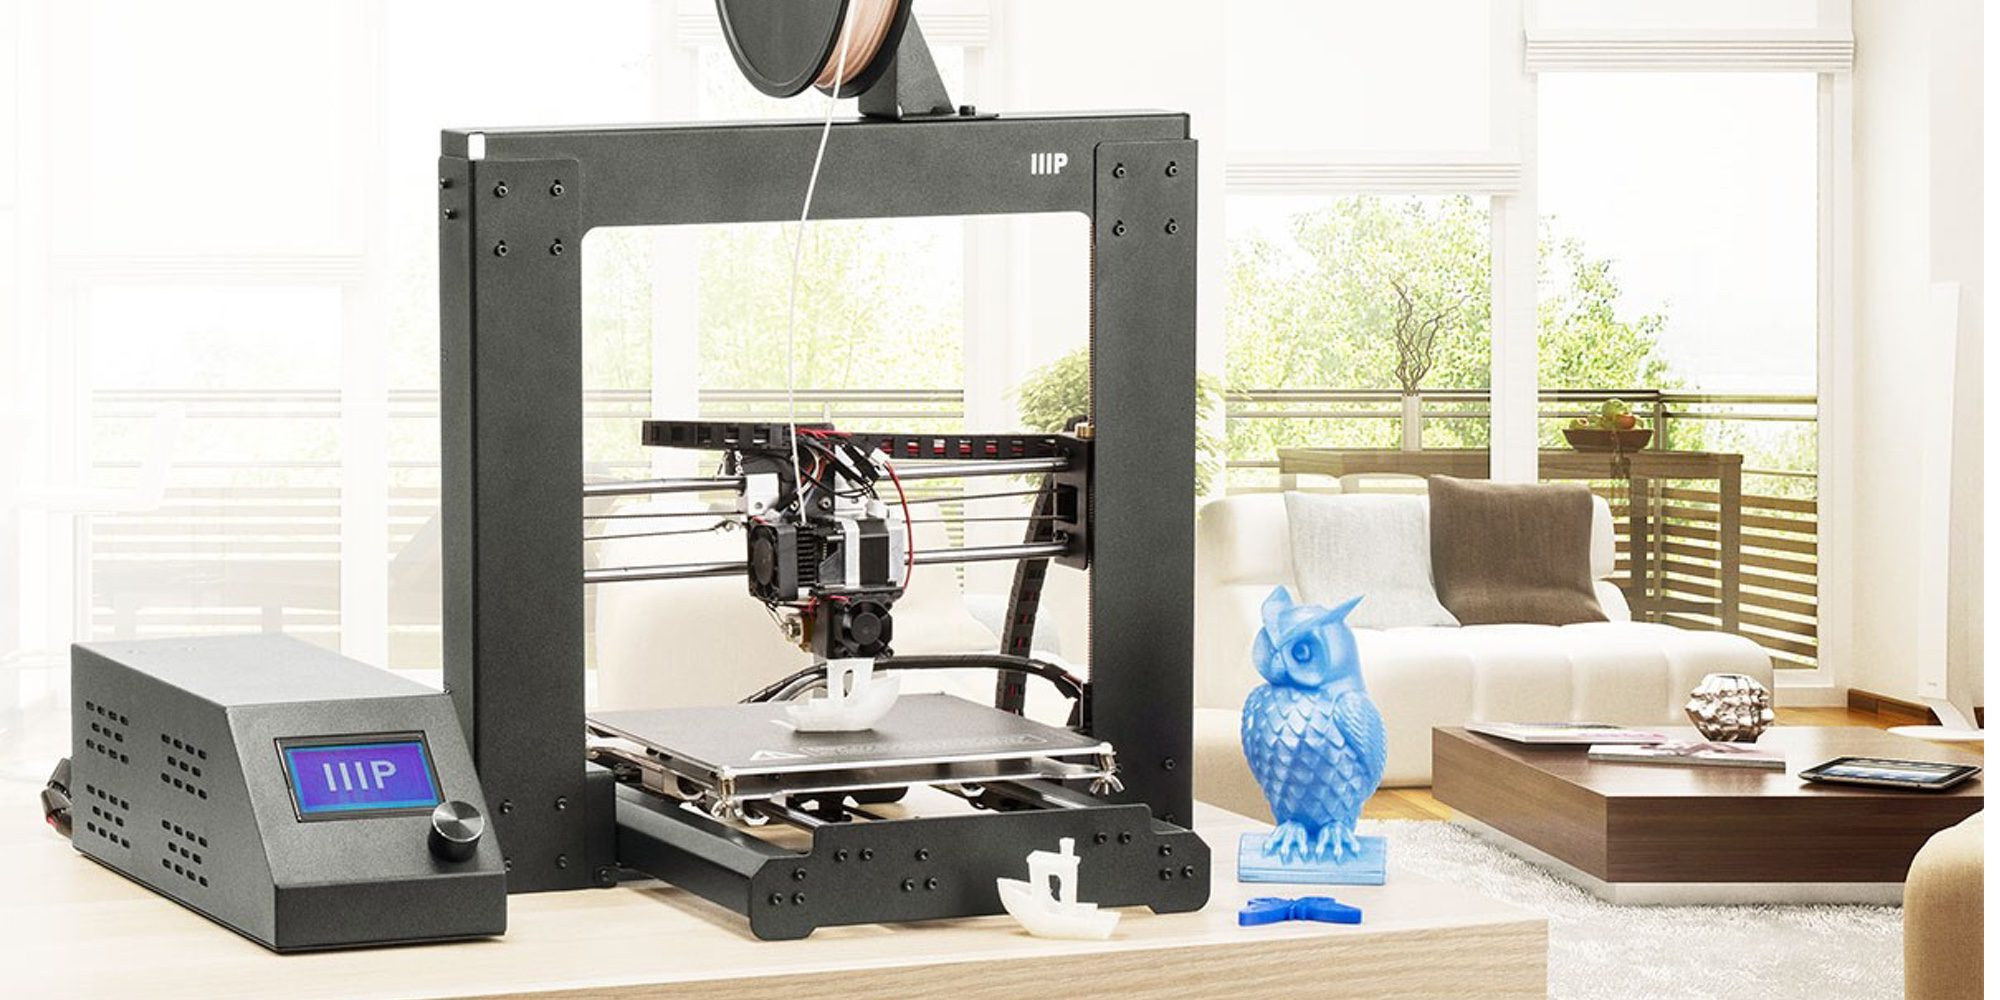 Maker Select 3D Printer V2 – The Future of 3D Printing